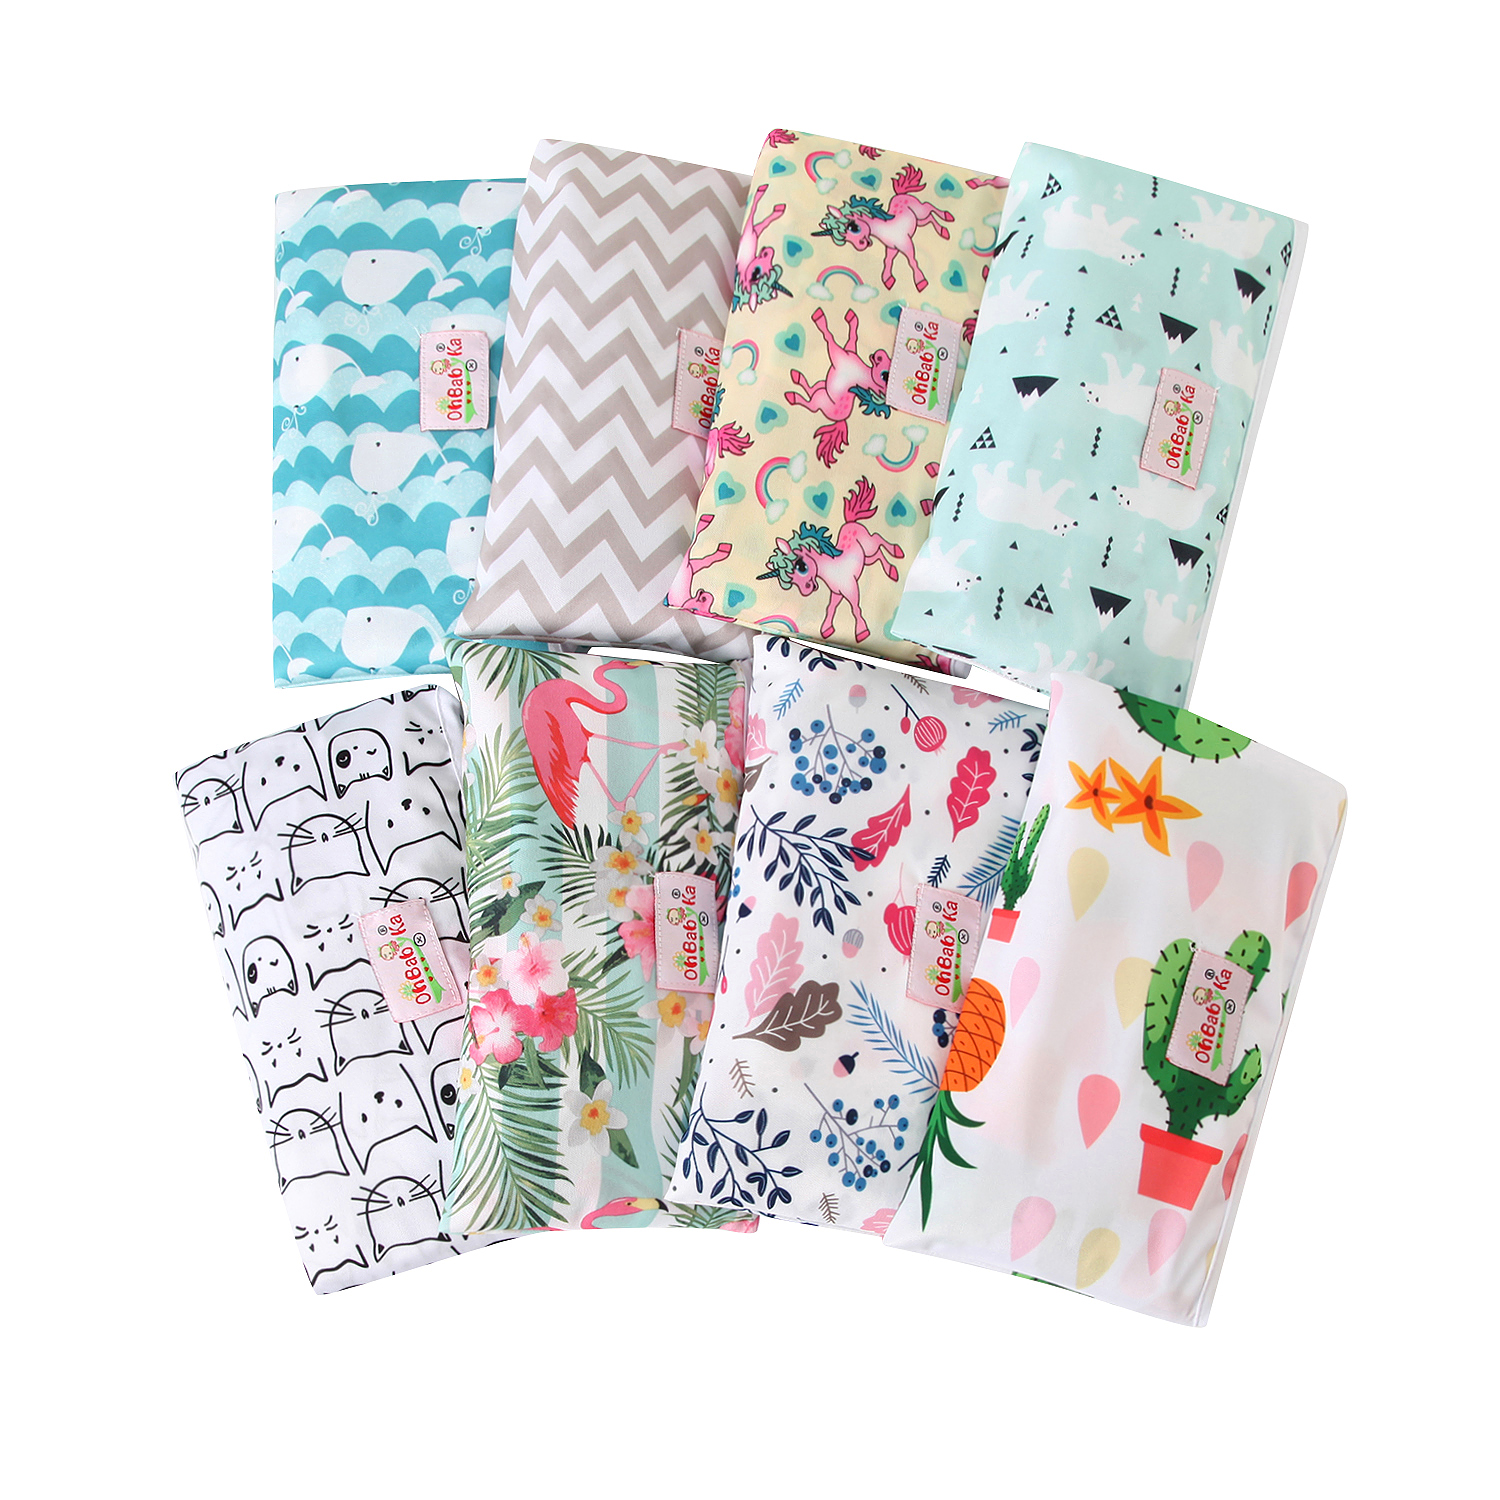 Baby Changing Mat Portable Foldable Compact Travel Cloth Diaper Nappies Floor Mat Washable Waterproof Baby Changing Play Mat